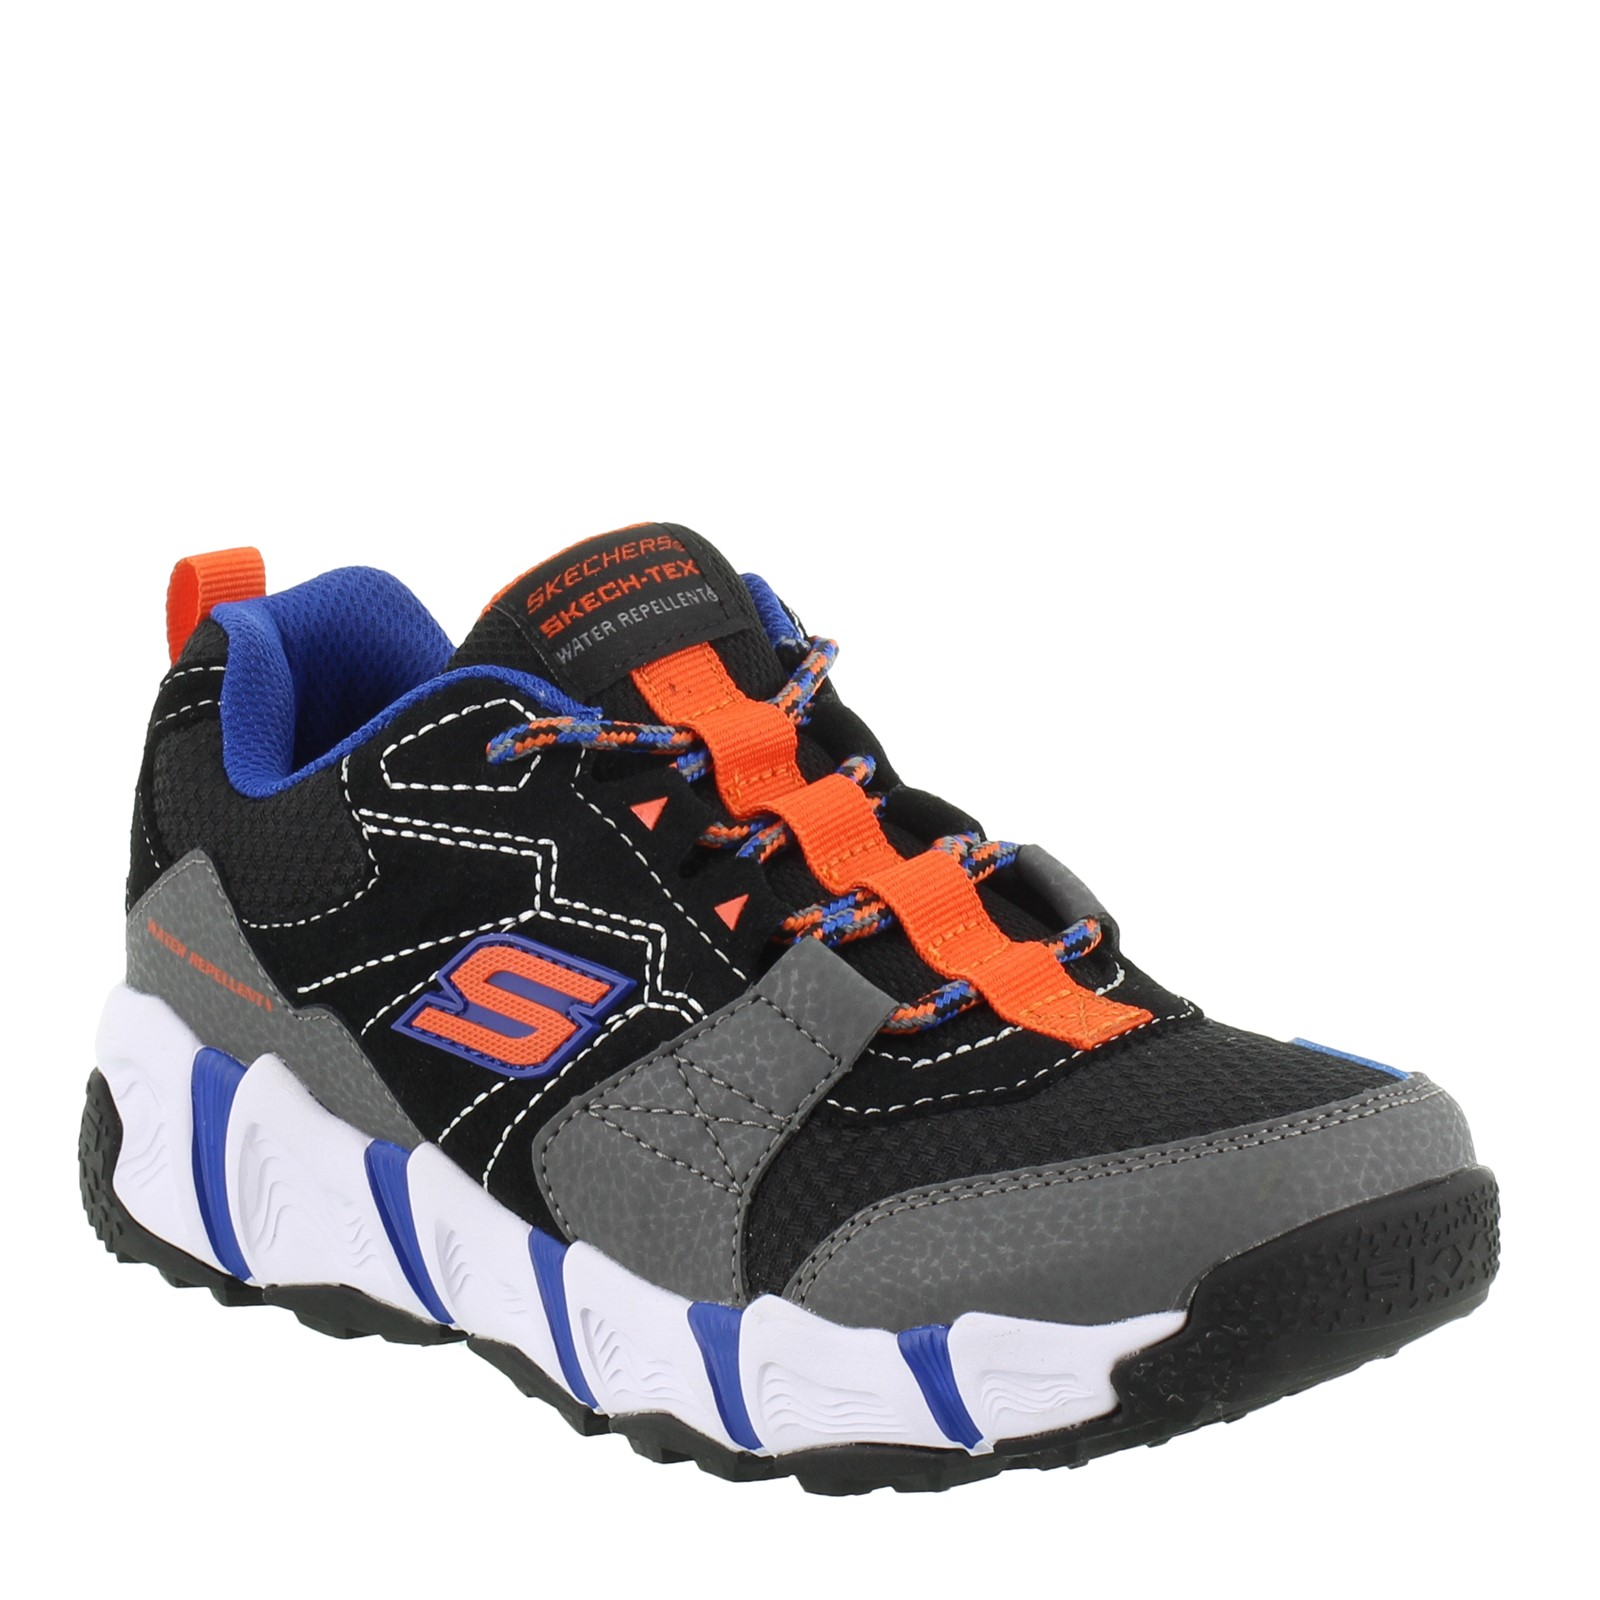 Boy's Skechers, Velocitrek Trail Blaster Little Kid & Big Kid